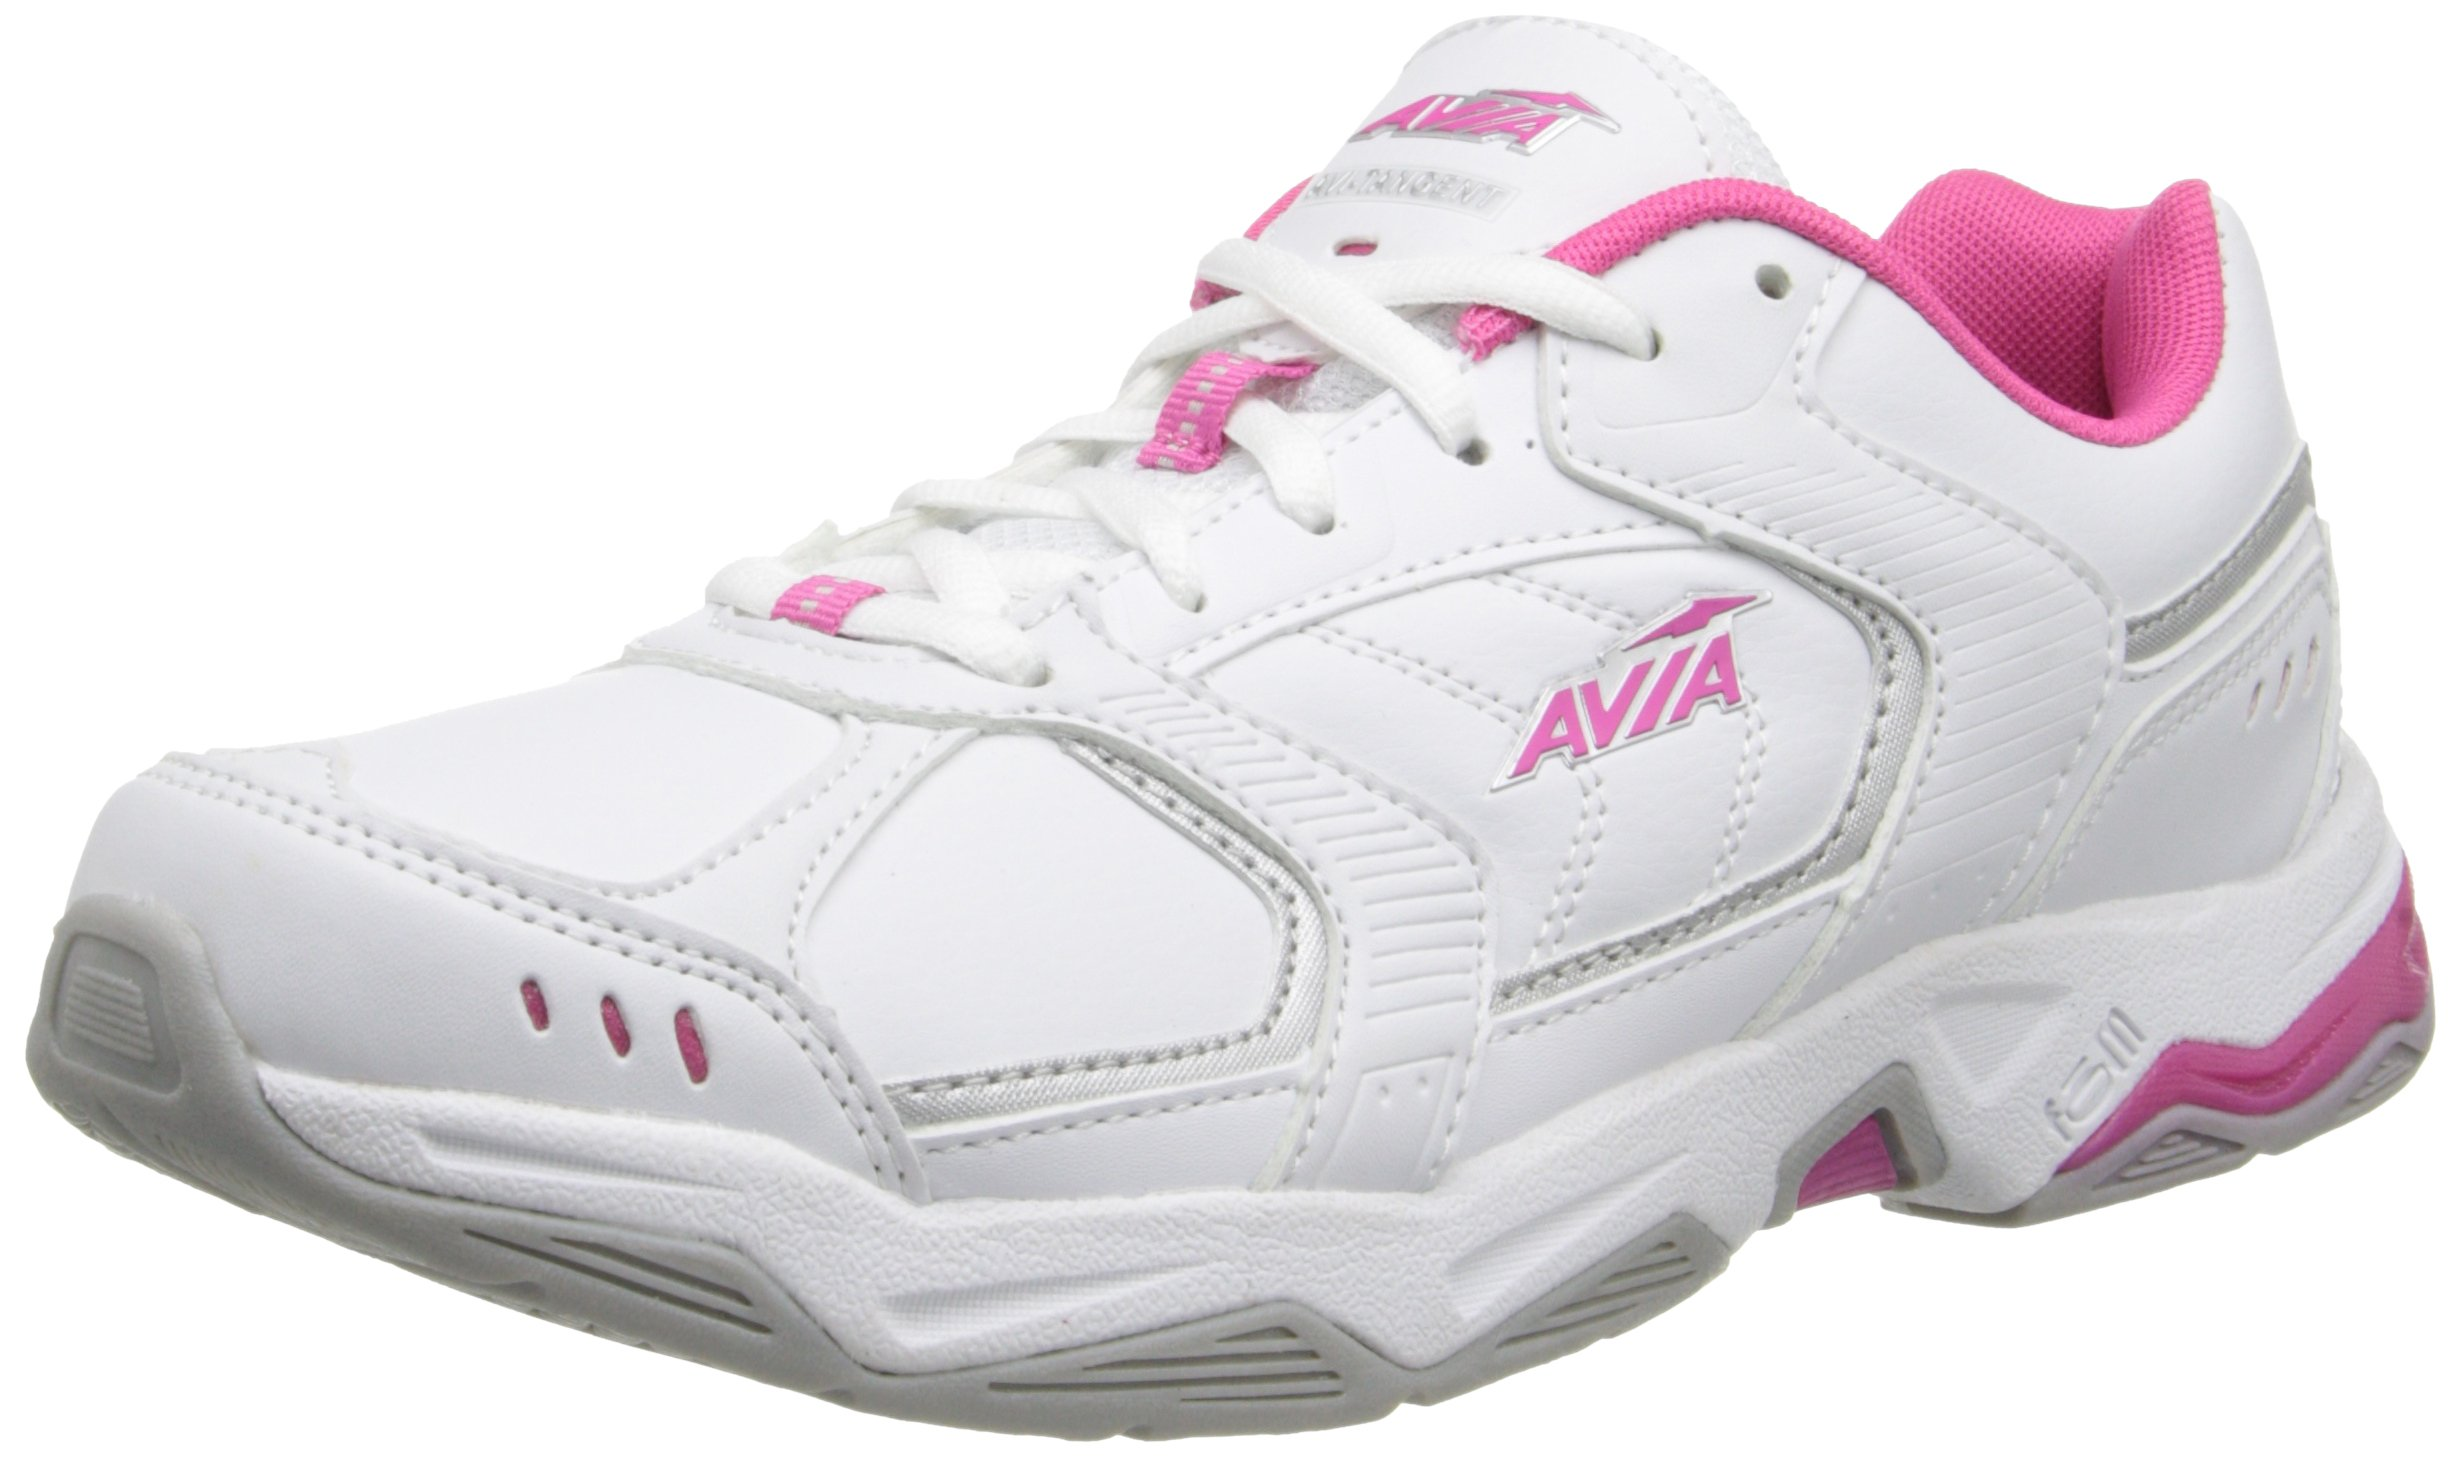 Avia Women's Tangent-W, White/Pink Scorch/Chrome Silver, 9.5 M US